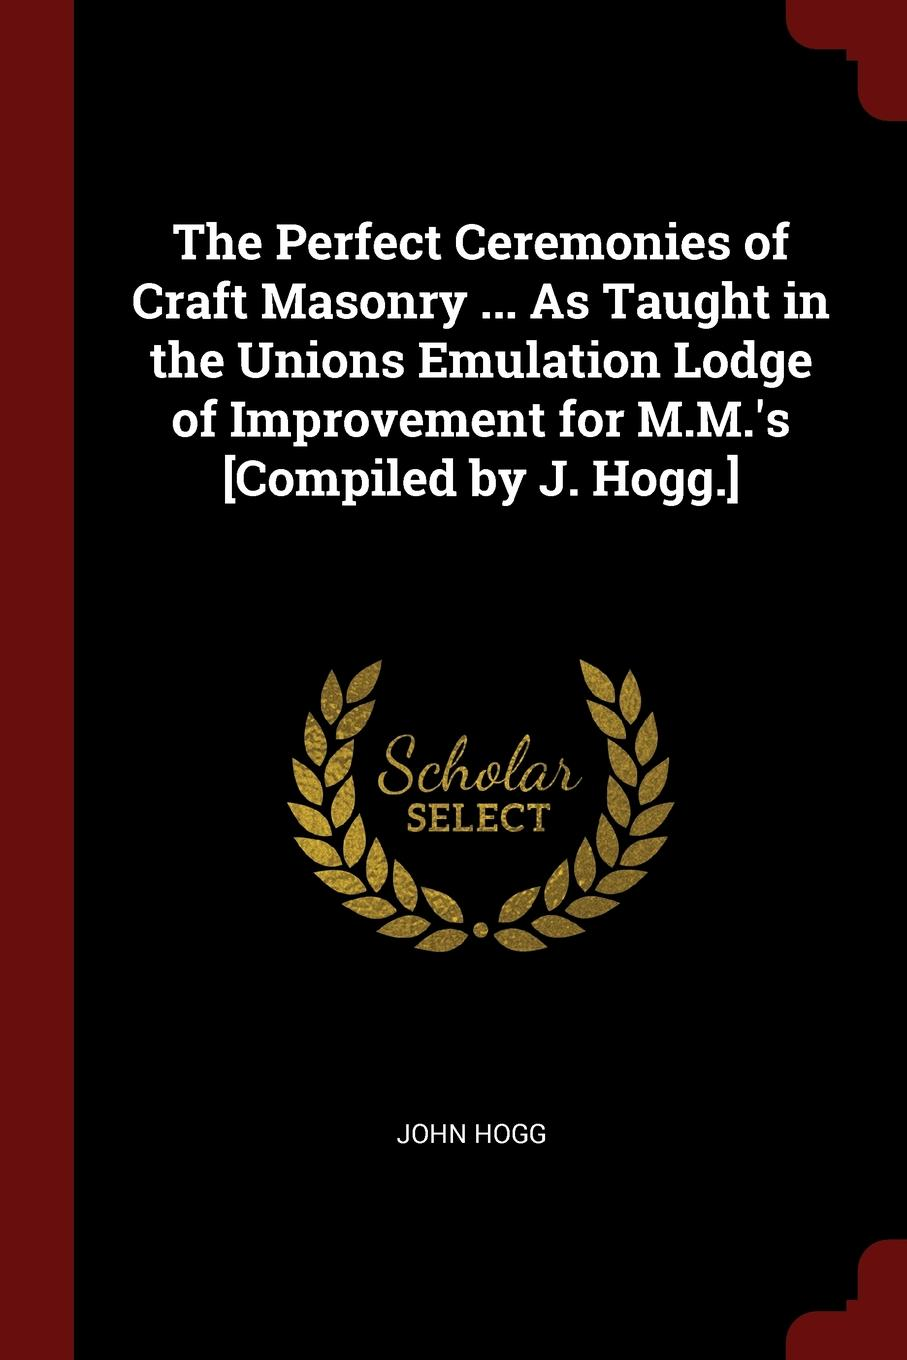 The Perfect Ceremonies of Craft Masonry ... As Taught in the Unions Emulation Lodge of Improvement for M.M..s .Compiled by J. Hogg... John Hogg